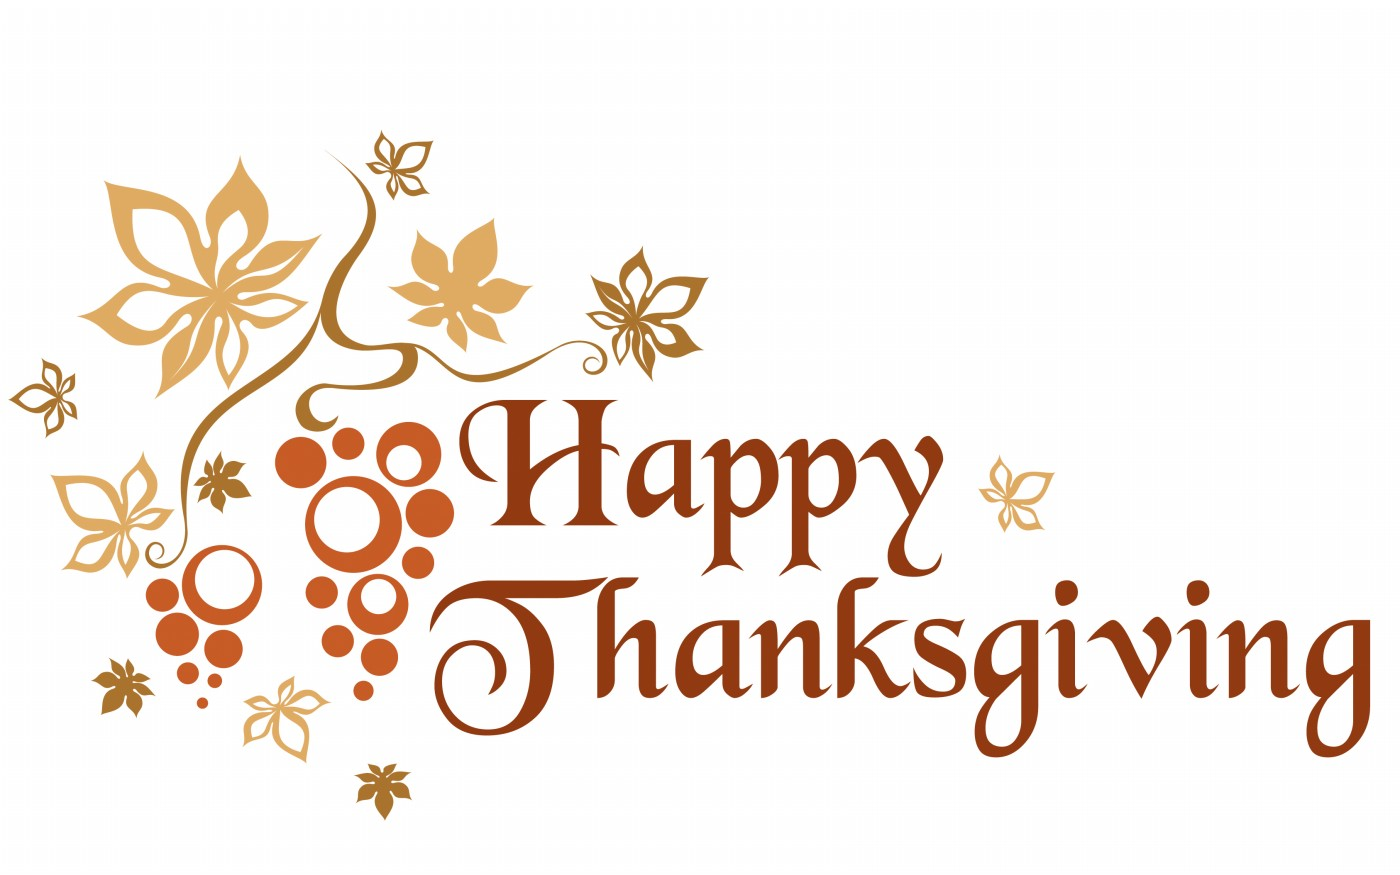 Best thanksgiving 2017 images pictures hd wallpaper songs quotes best thanksgiving 2017 images pictures hd wallpaper songs quotes wishes greetings and messages kristyandbryce Gallery